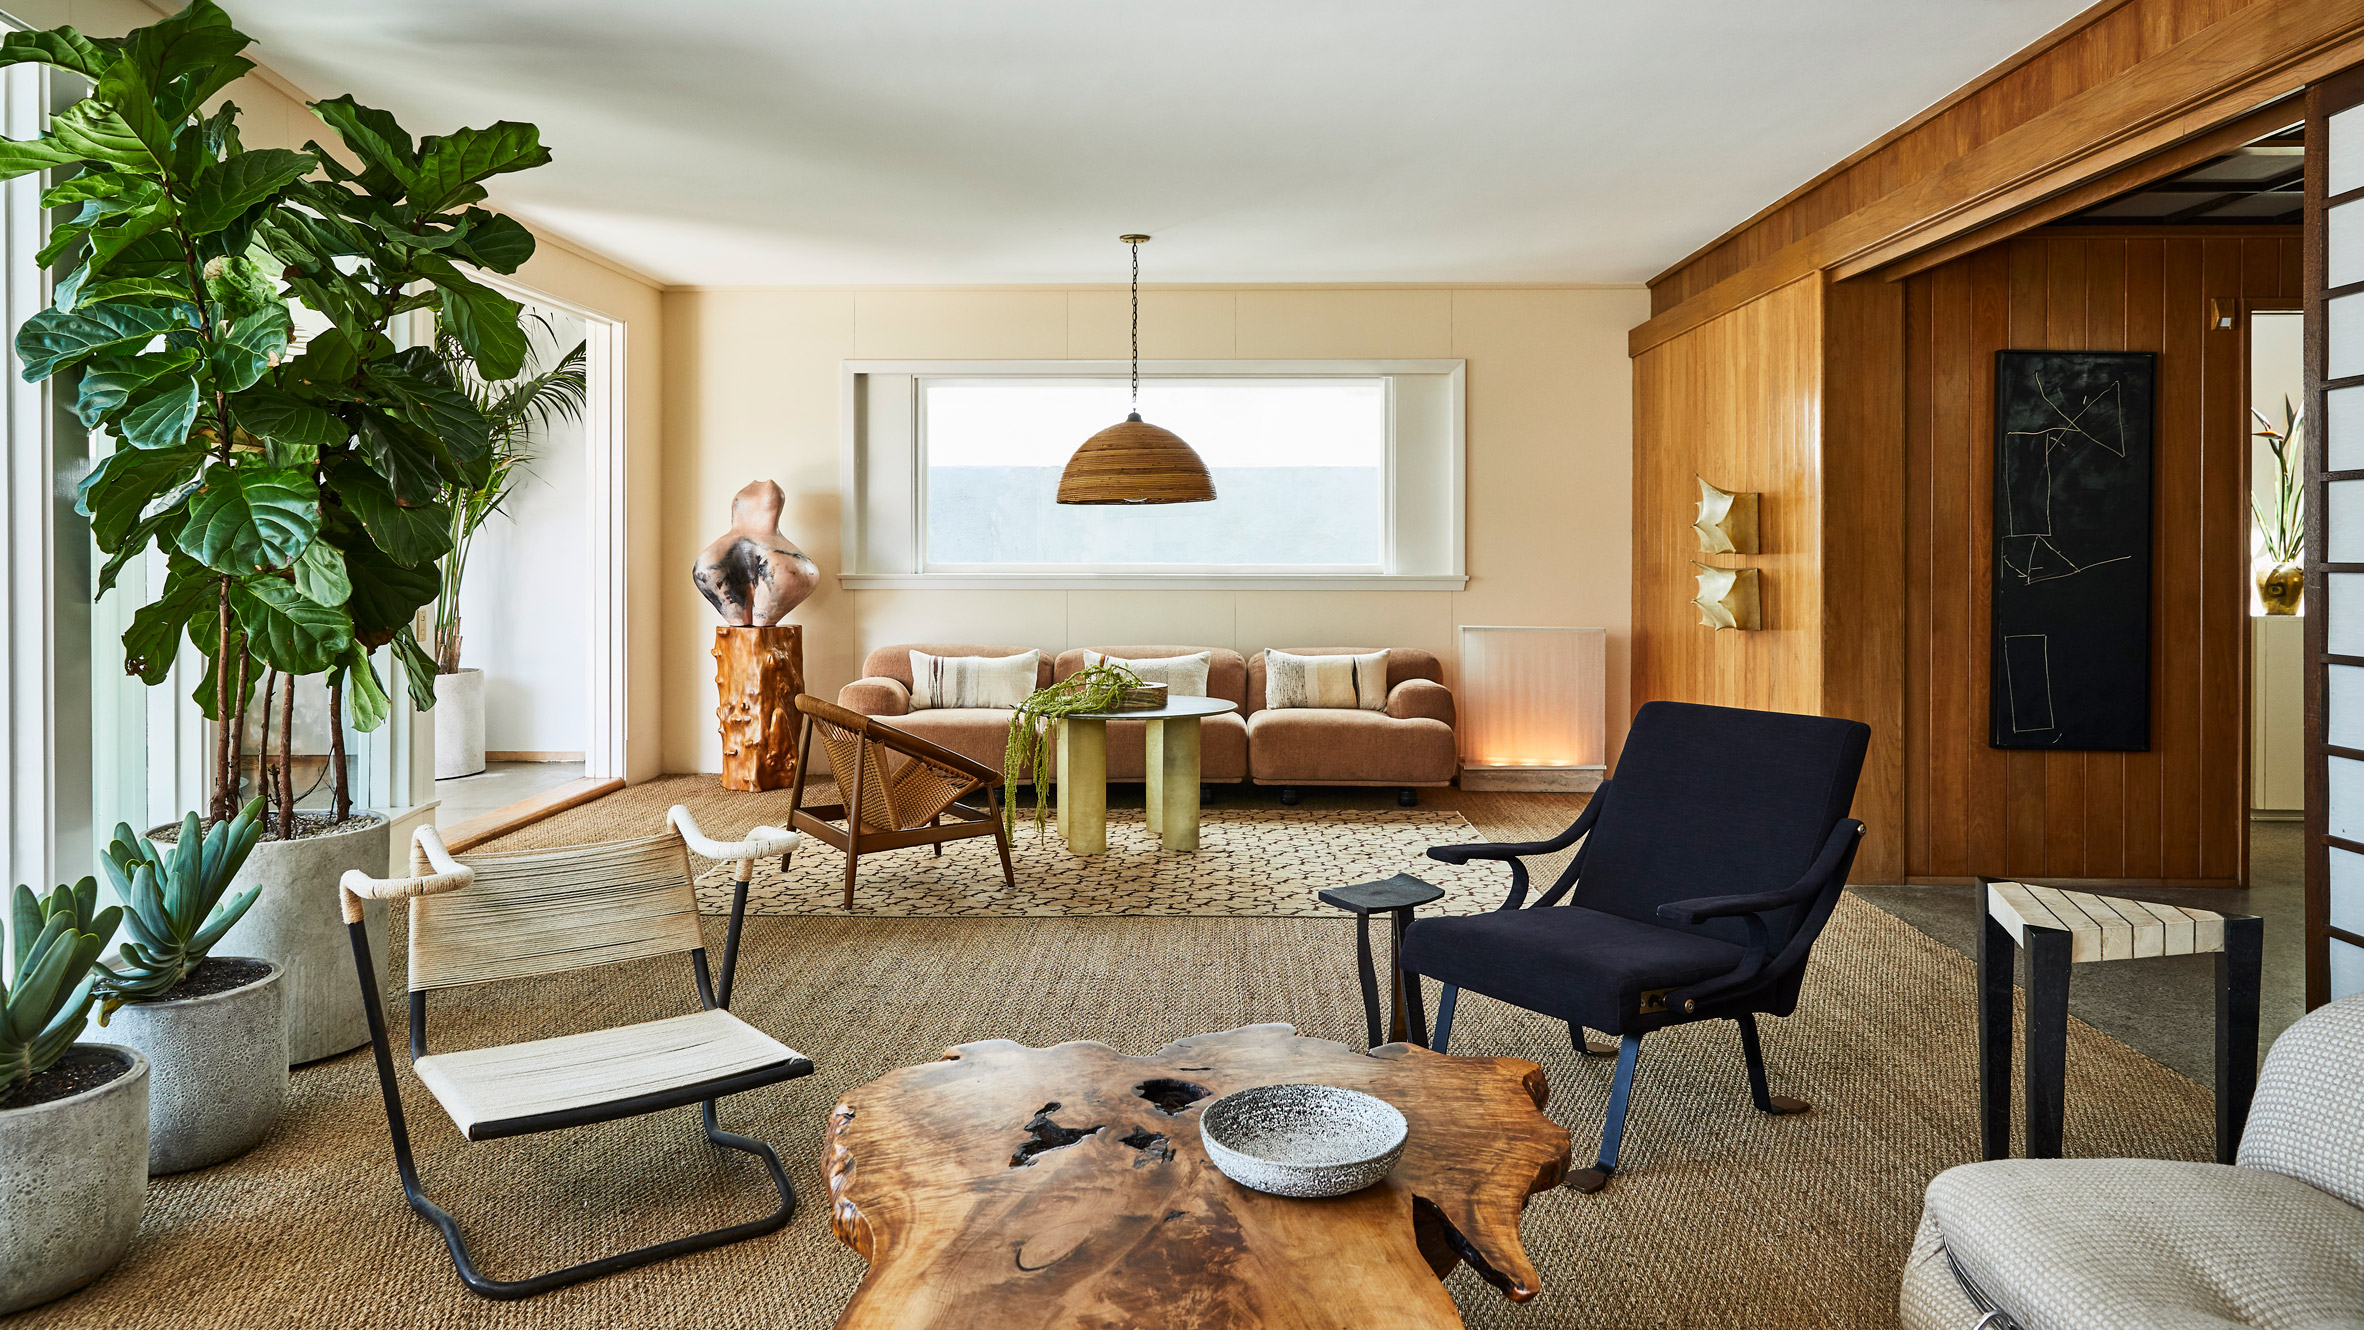 Malibu Surf Shack is a home for Kelly Wearstler and her family